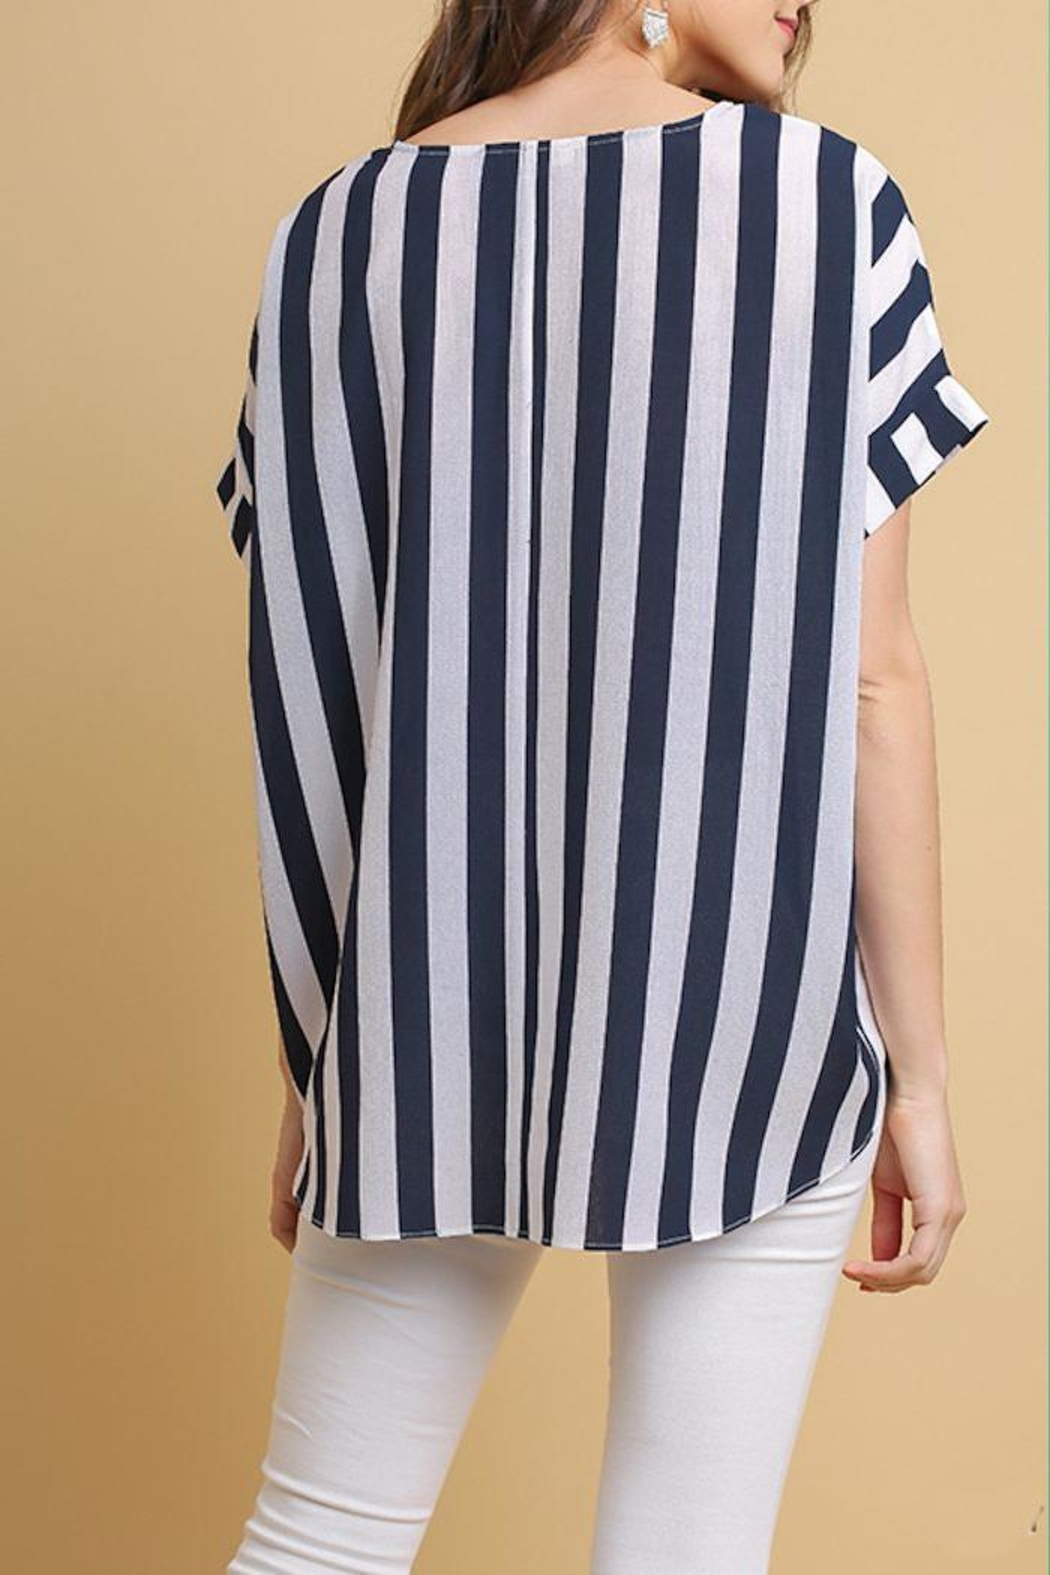 Umgee USA Striped High-Low Top - Front Full Image